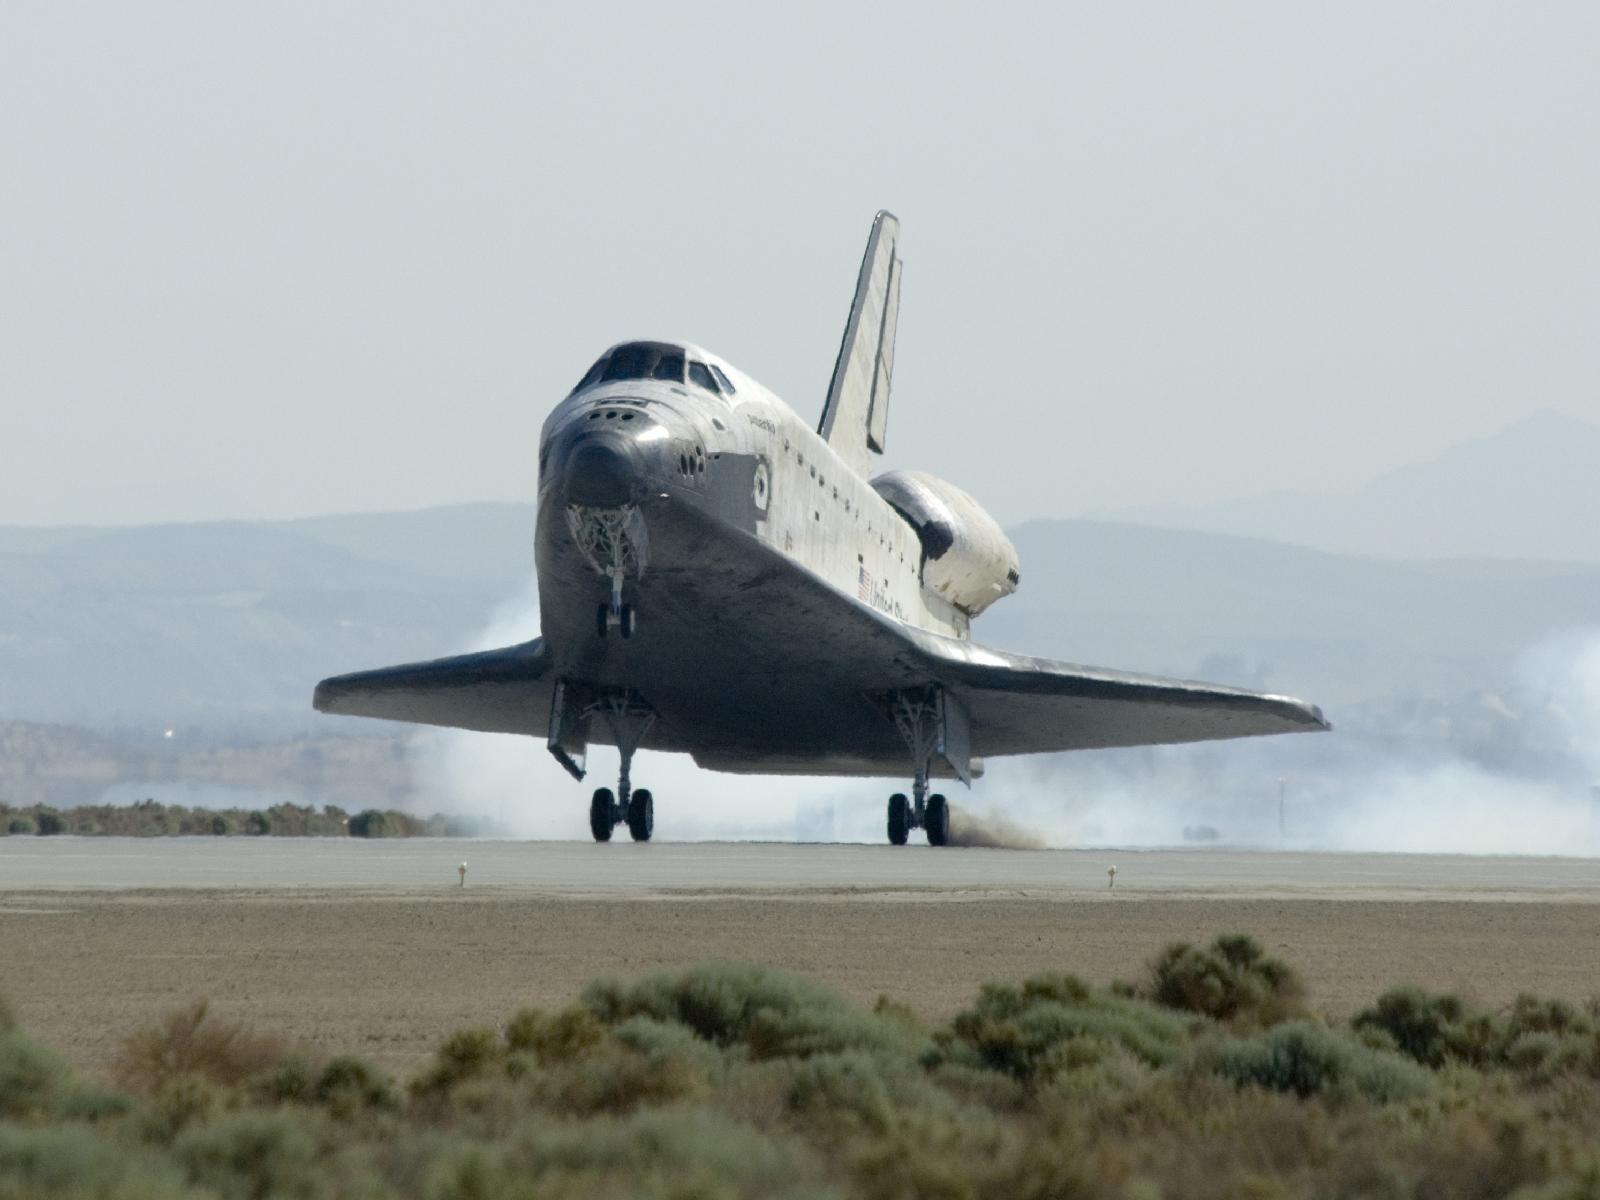 After almost 5.3-million-mile mission included five spacewalks to repair and upgrade the world-famous observatory, Atlantis and the crew of the STS-125 mission landed safely in California at Edwards Air Force Base after completing the Hubble Servicing Mission on Sunday, May 24, 2009.